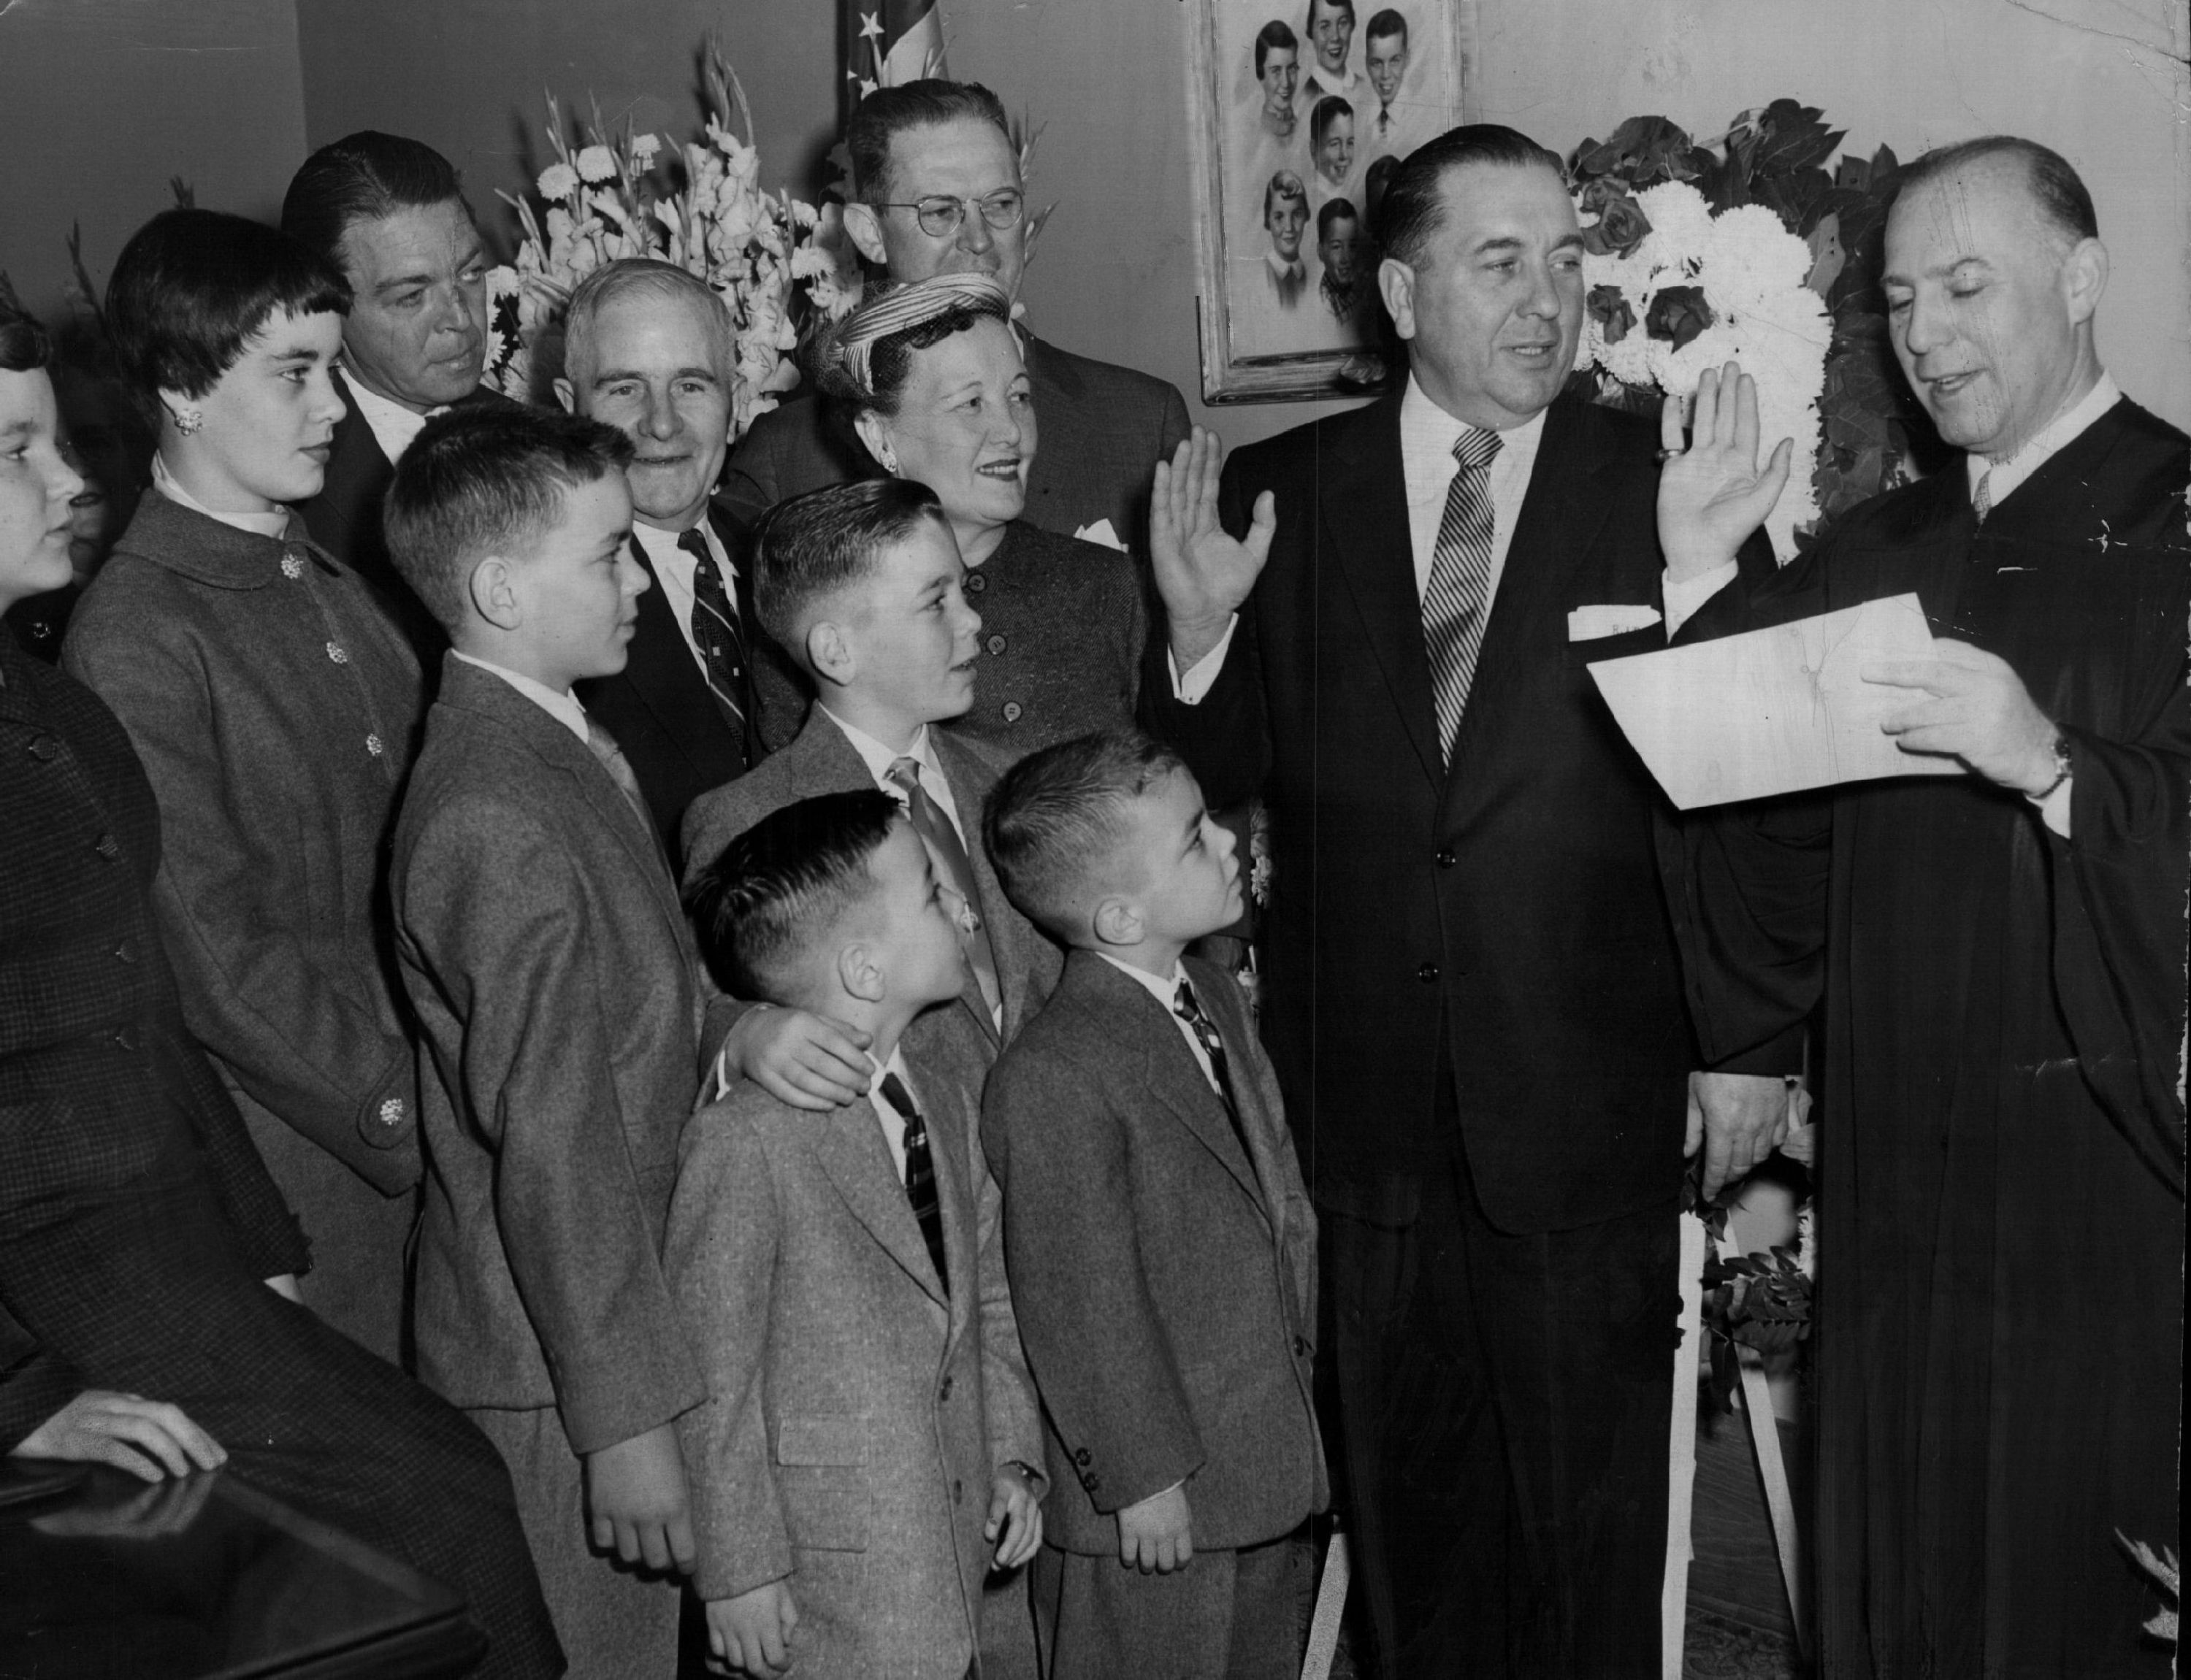 Richard J. Daley, second from right, takes the oath for his second term as Cook County clerk in 1954.